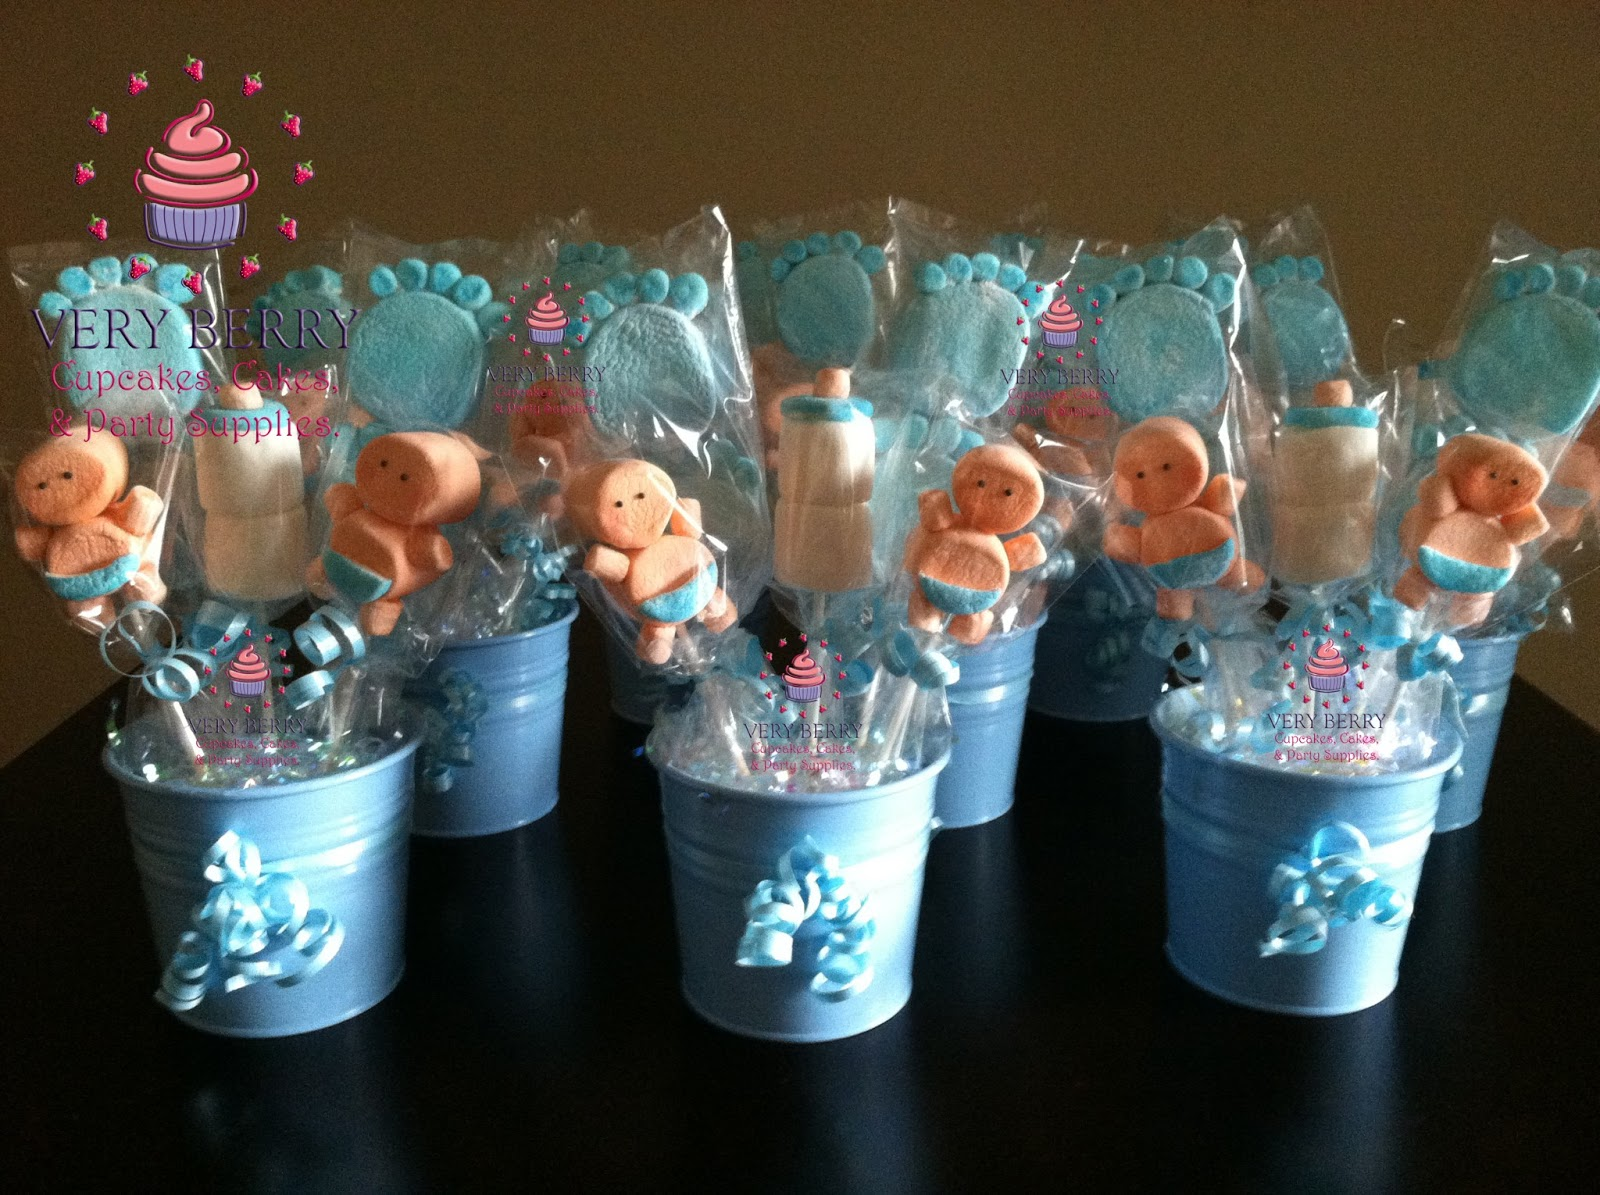 veryberry cupcakes boy baby shower marshmallow centerpieces. Black Bedroom Furniture Sets. Home Design Ideas